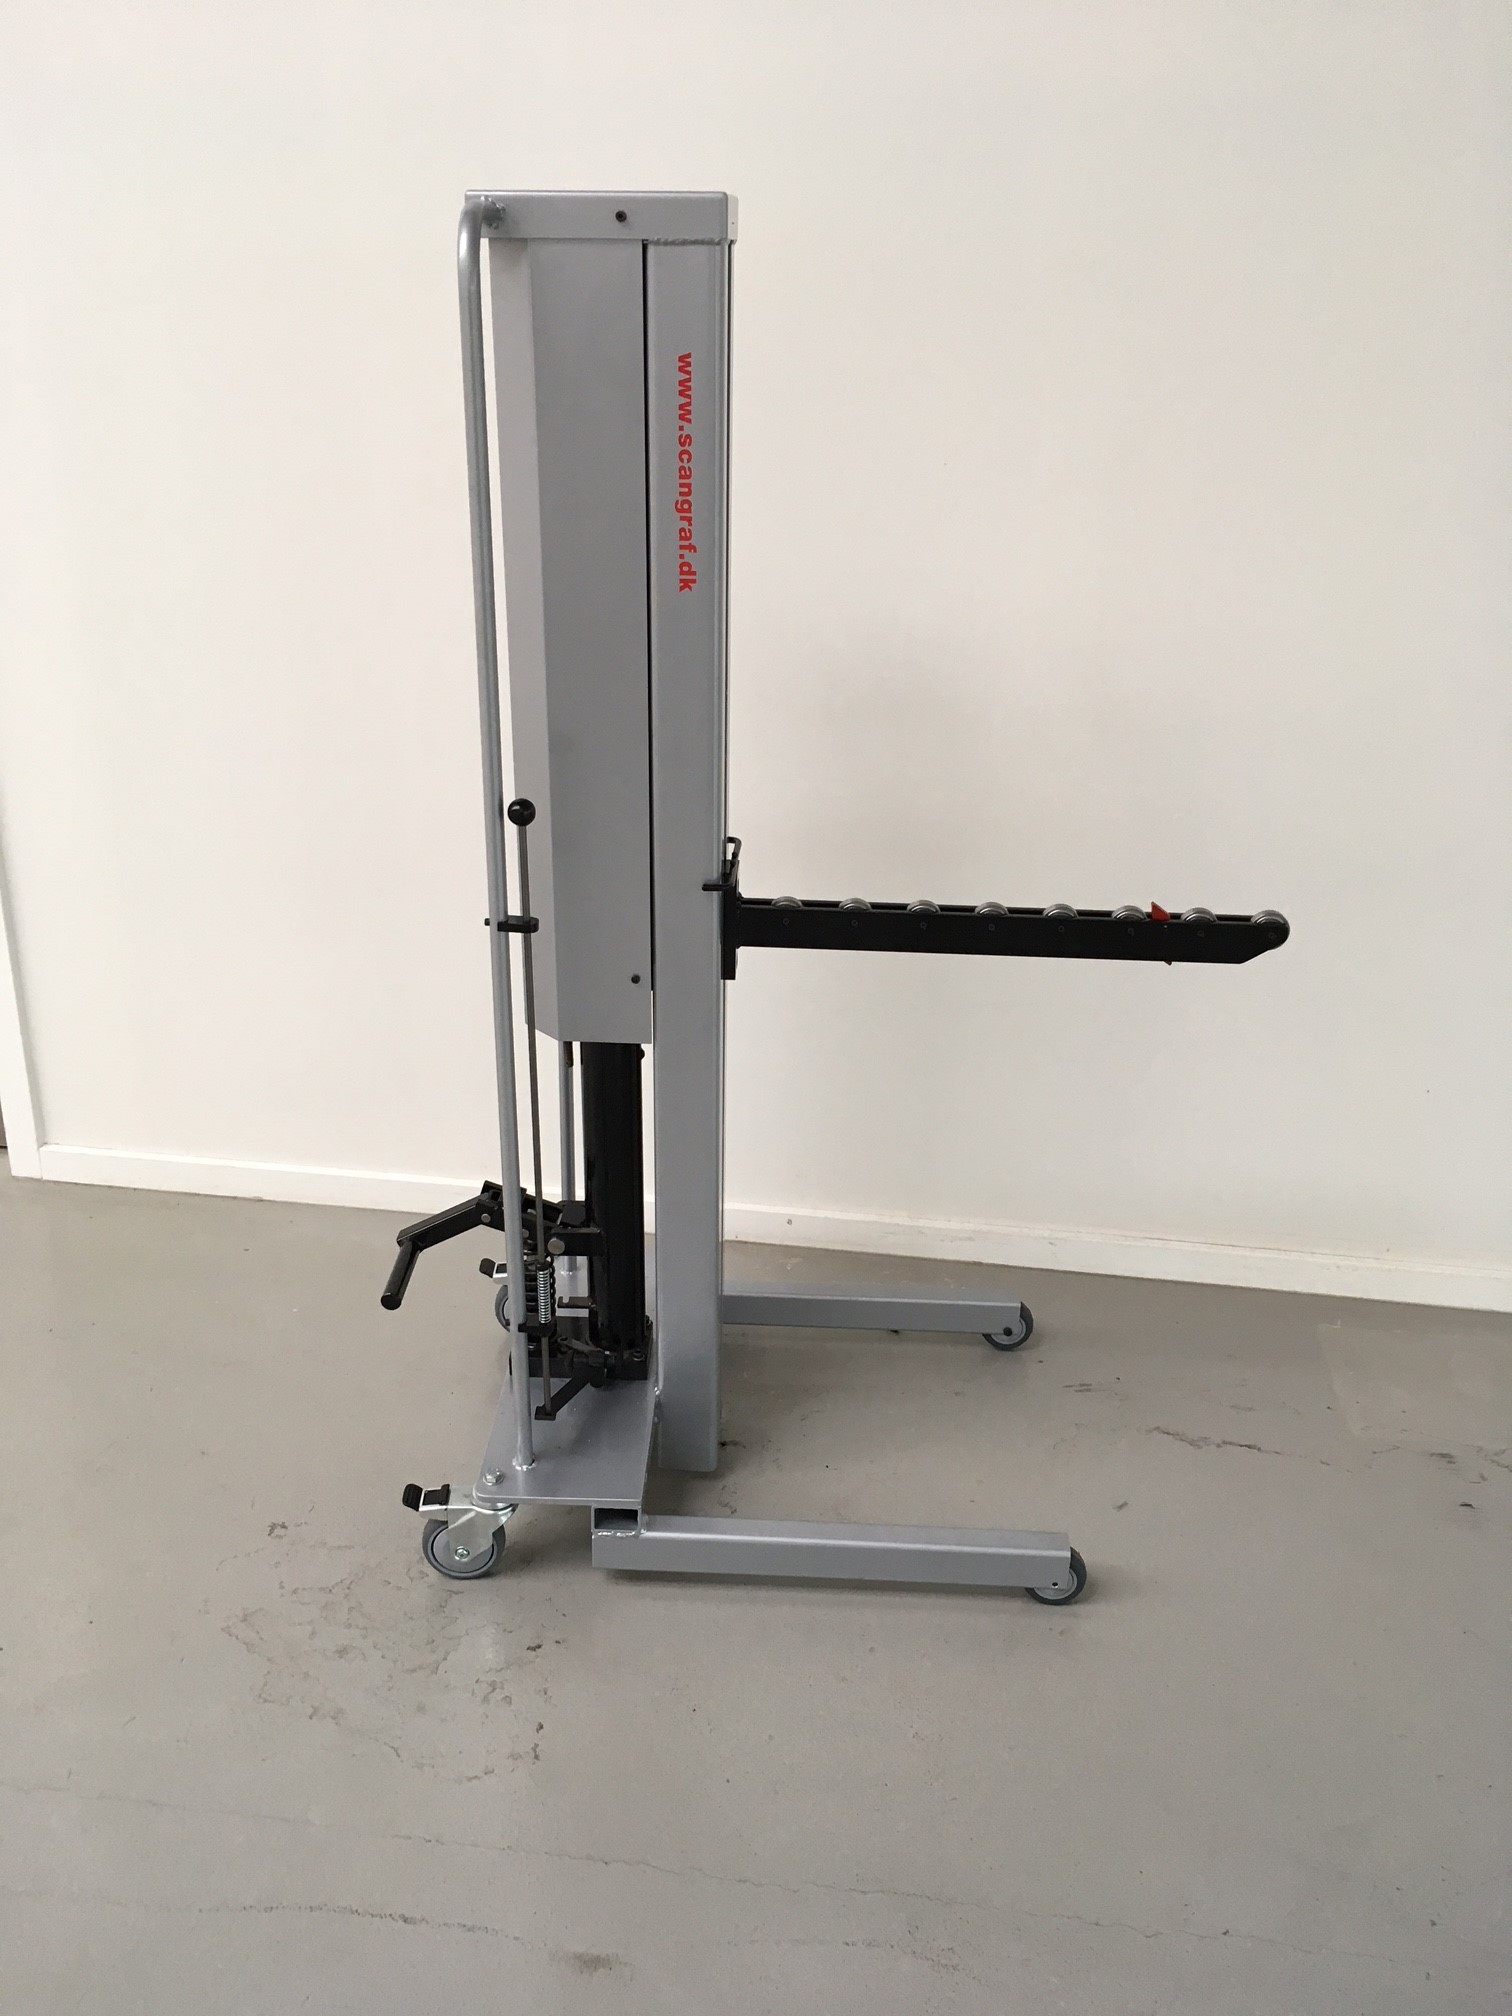 Reel lift trolley